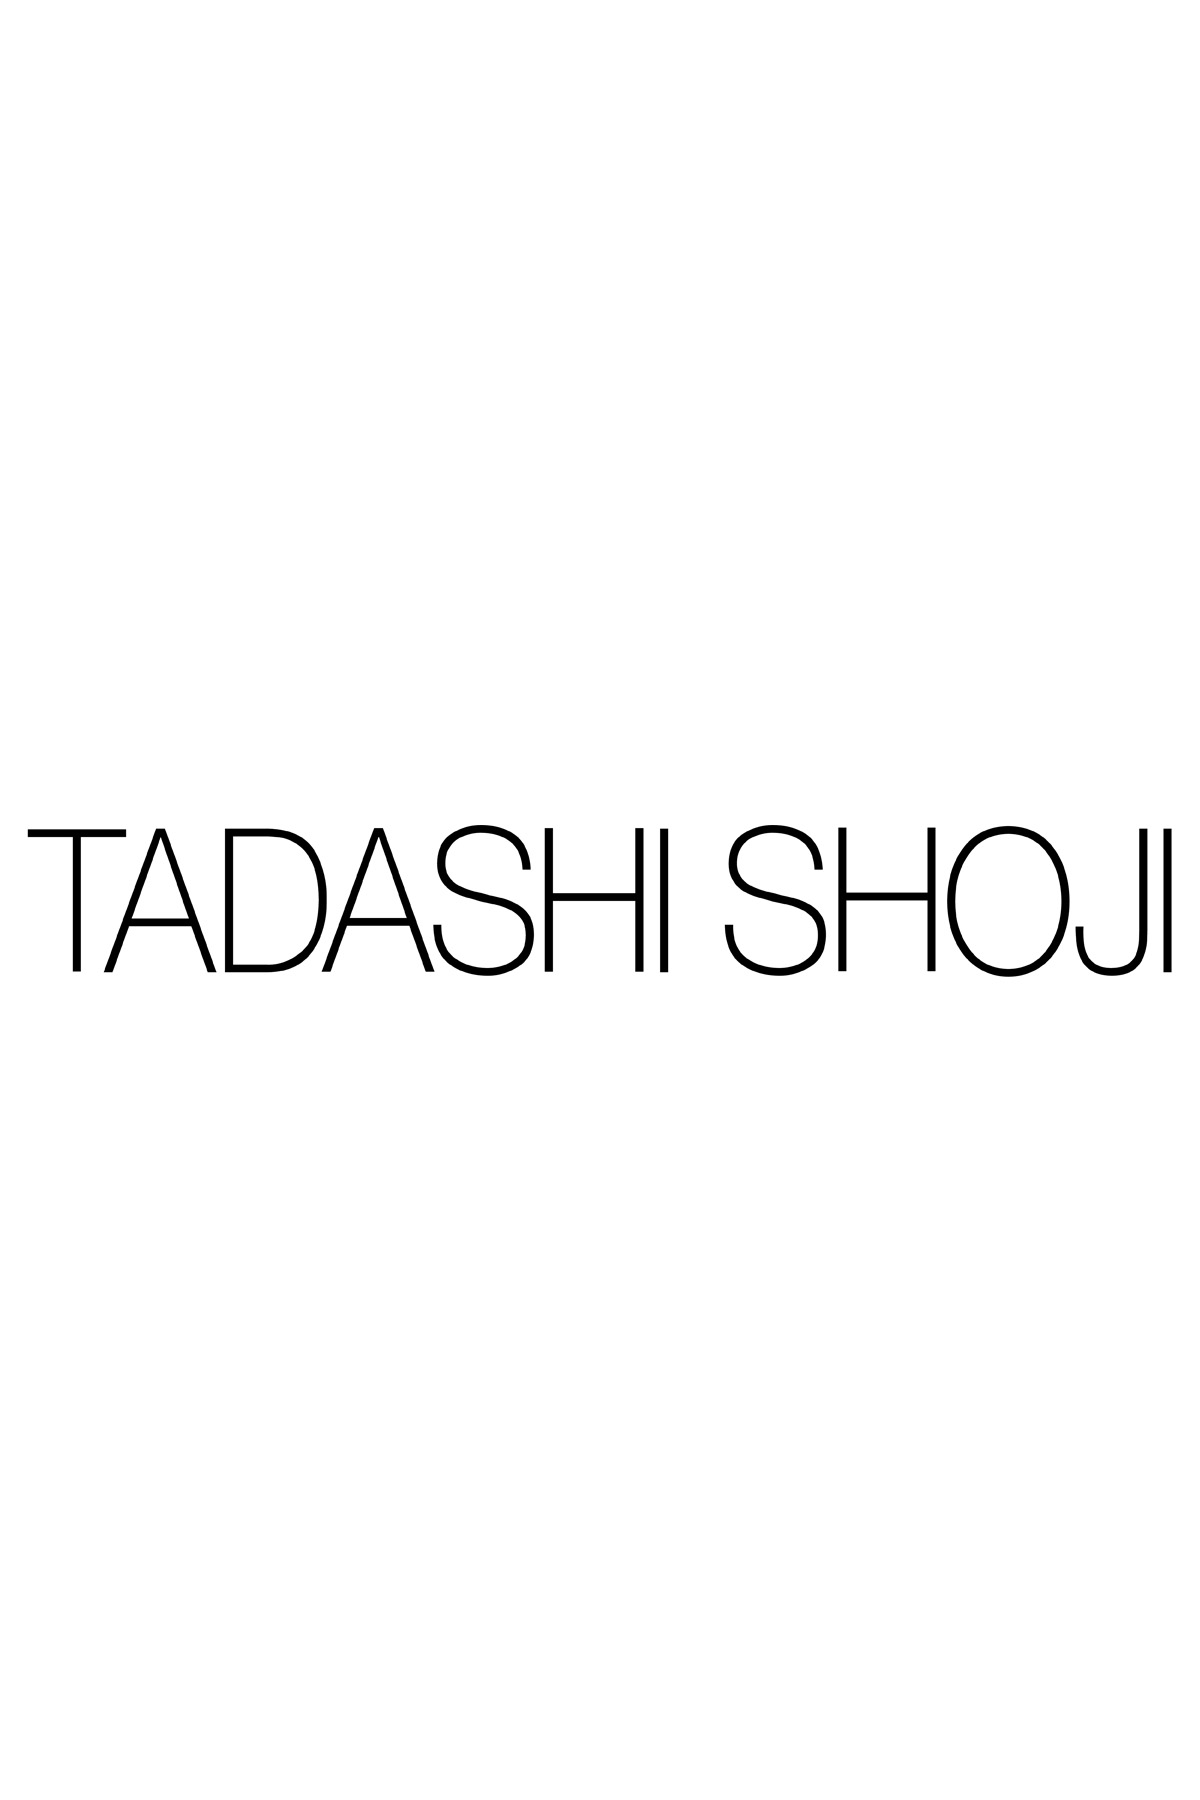 Tadashi Shoji Petite Size - Illusion Lace 3/4 Sleeve Dress with Grosgrain Ribbon Belt